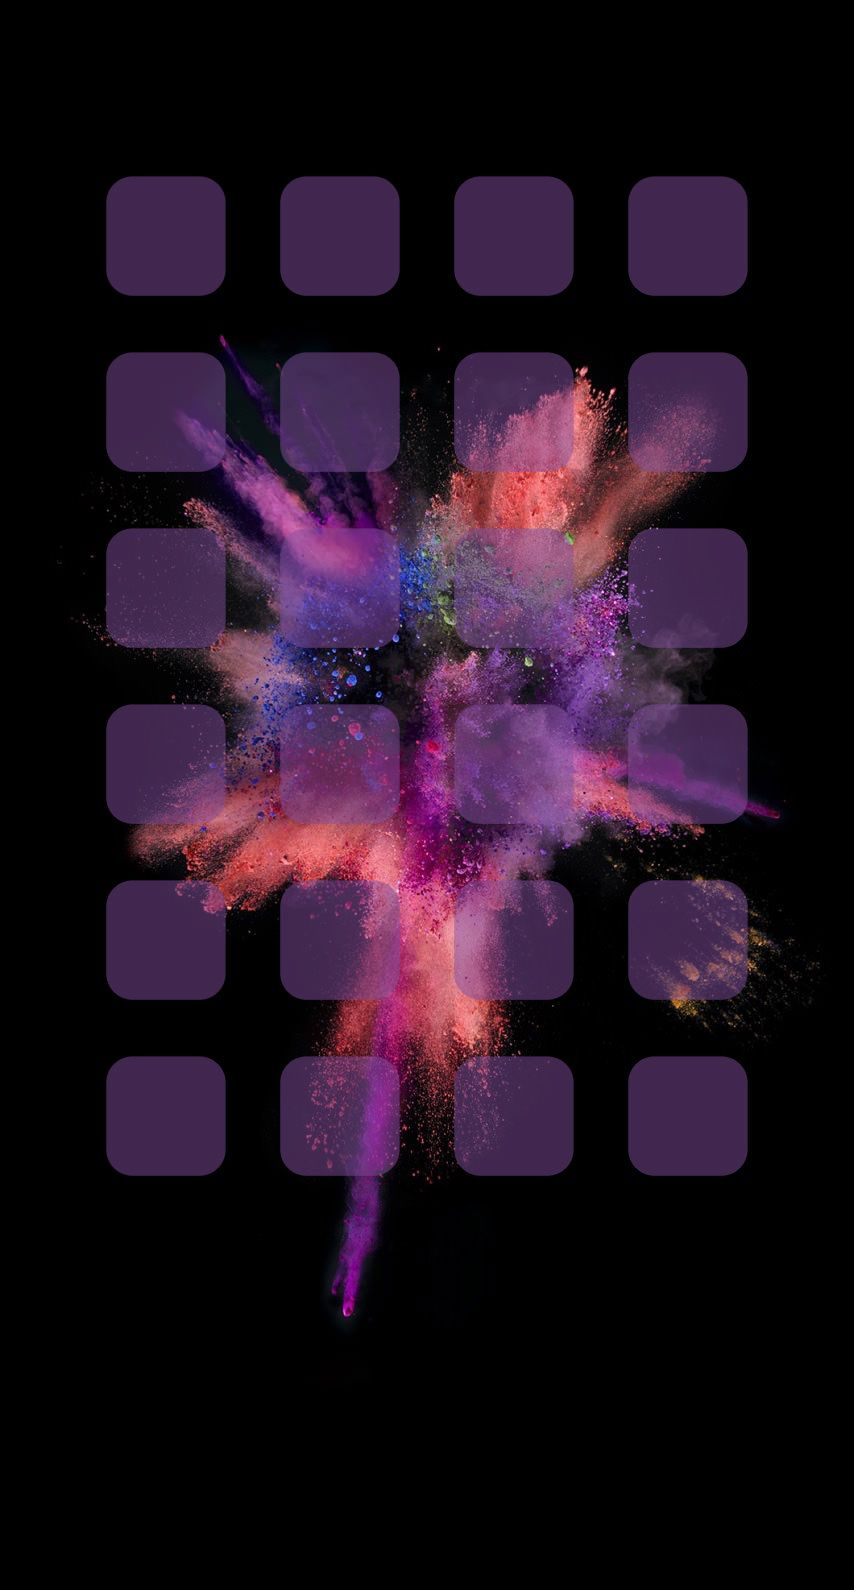 Explosion Purple Shelf Cool Wallpaper Sc Iphone6s Ipod Wallpaper Iphone 6s Wallpaper Iphone Homescreen Wallpaper